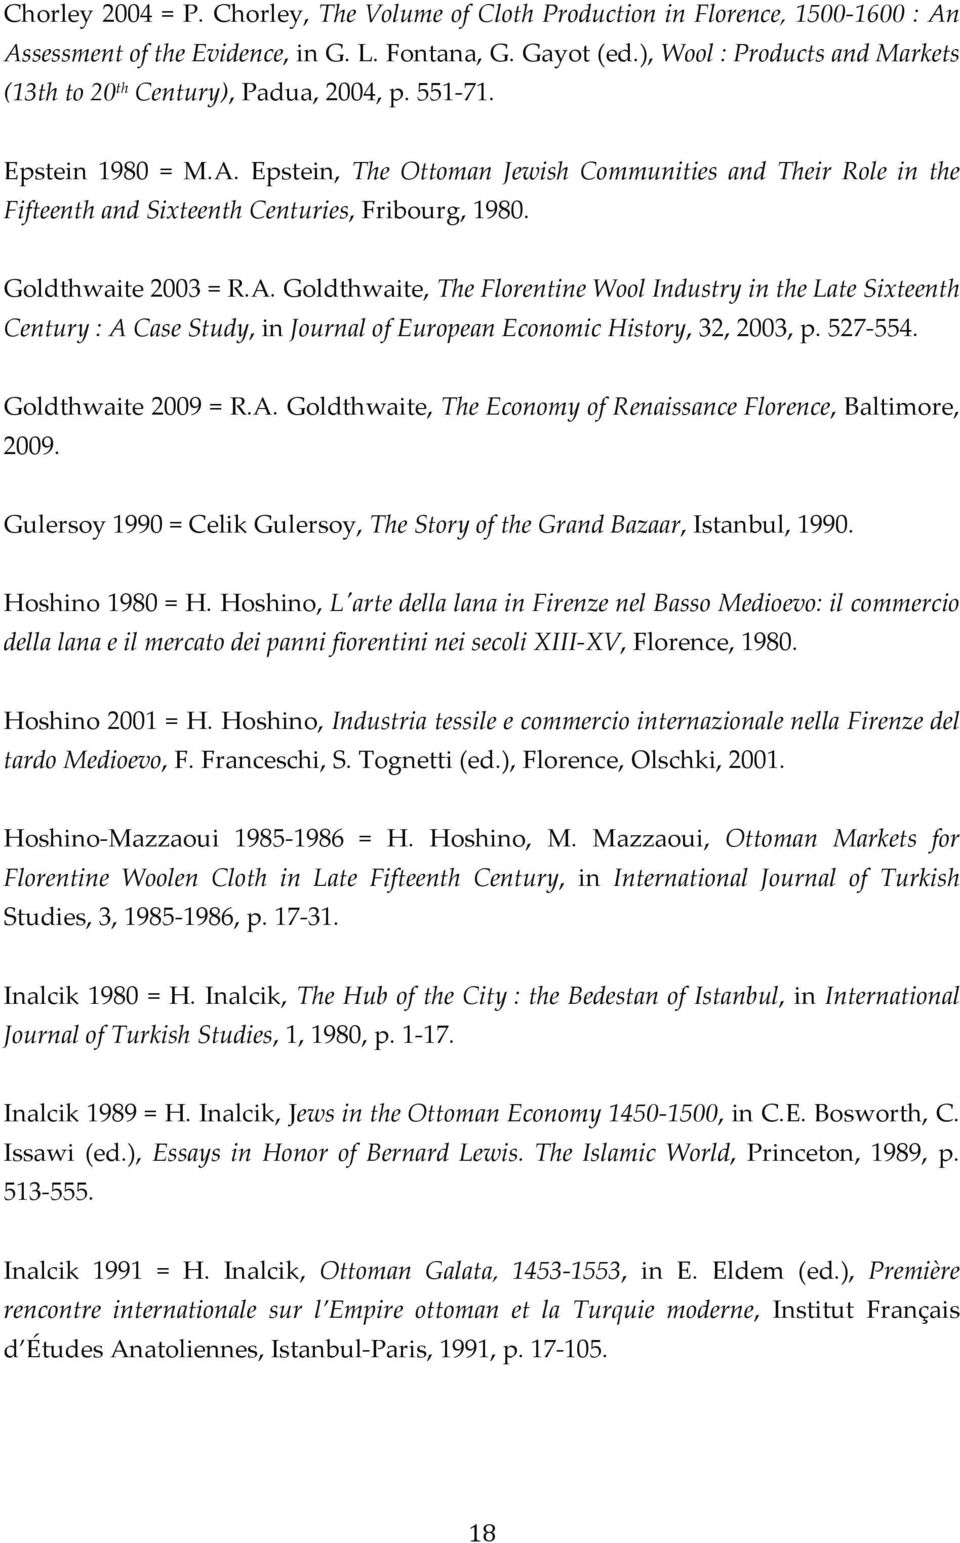 Epstein, The Ottoman Jewish Communities and Their Role in the Fifteenth and Sixteenth Centuries, Fribourg, 1980. Goldthwaite 2003 = R.A.